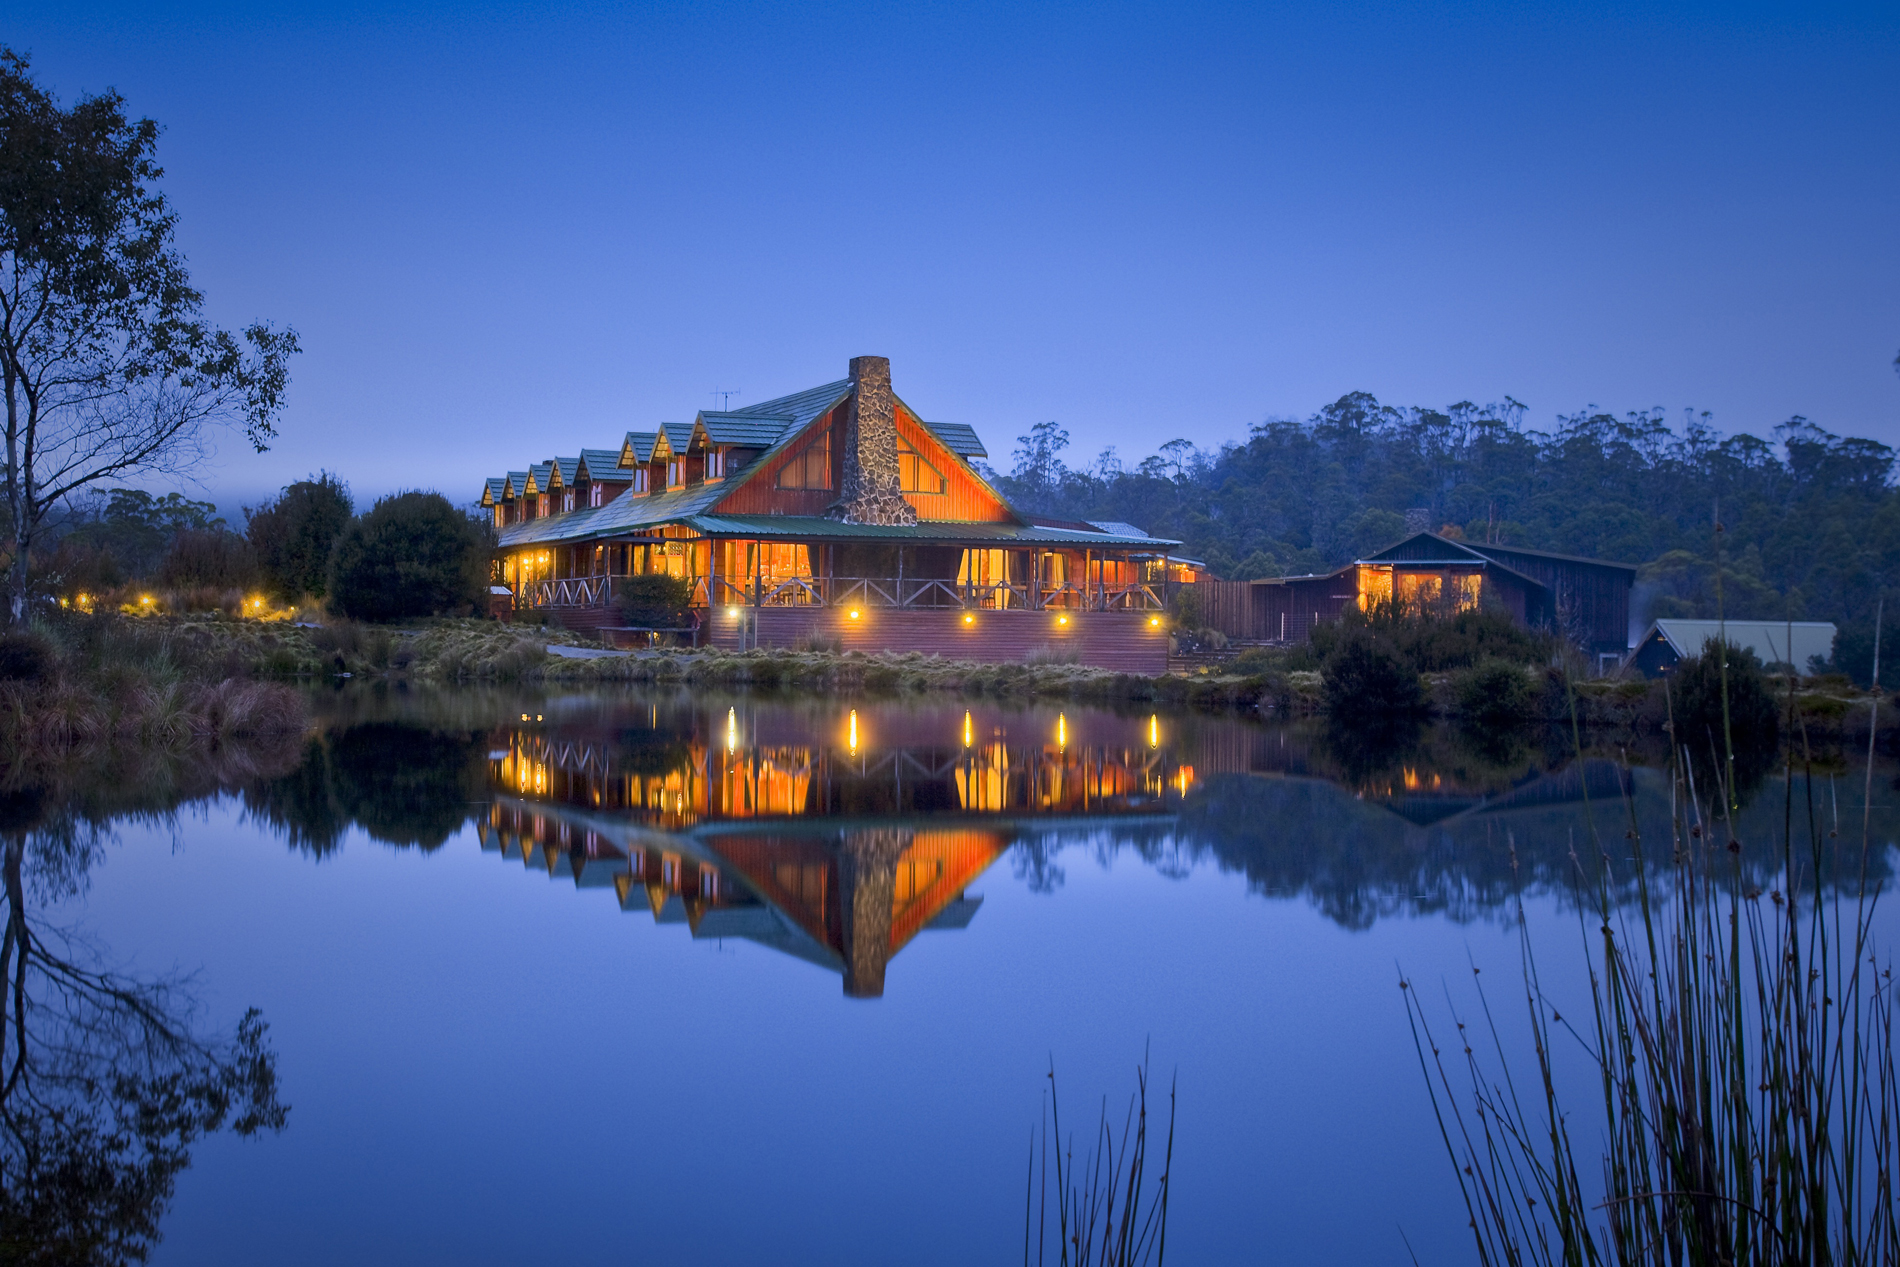 20 Unbelievable Off-the-Grids Getaways | Part I | Cradle Mountain Eco Lodging | www.peppers.com.au/cradle-mountain-lodge/